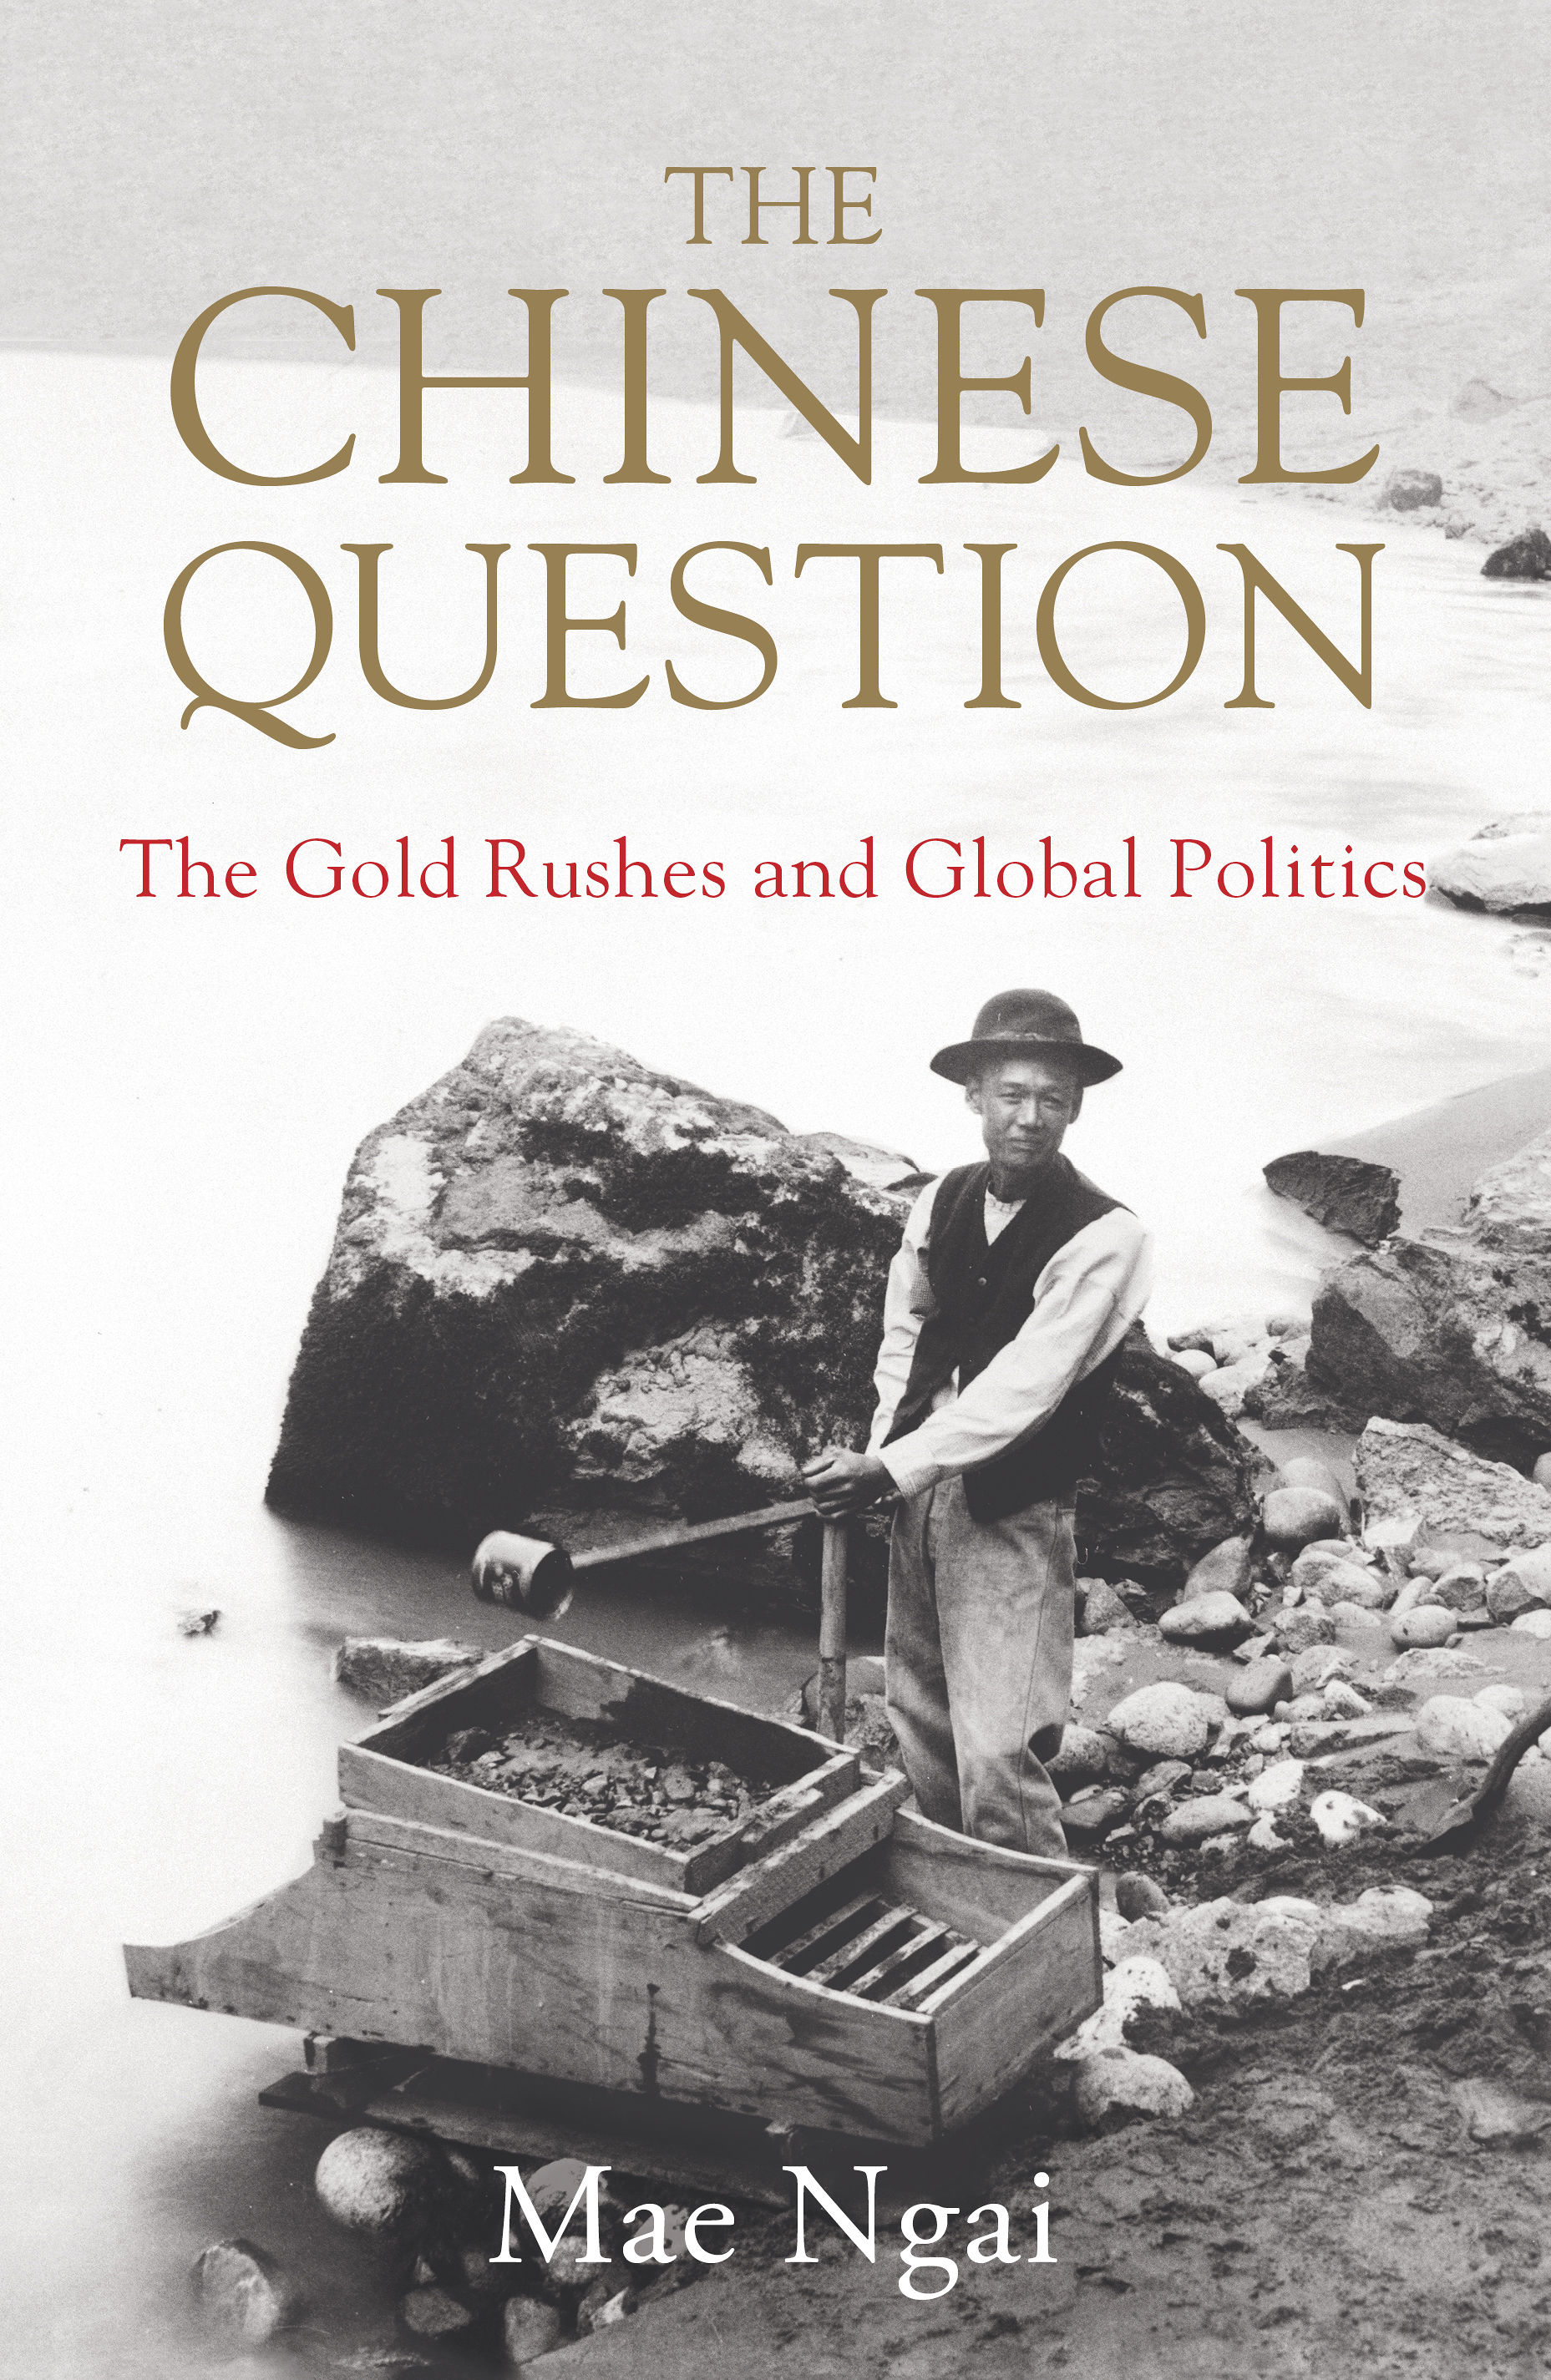 BPL presents- Virtual Author Talk with Mae Ngai, author of <i>The Chinese Question: The Gold Rushes and Global Politics</i>